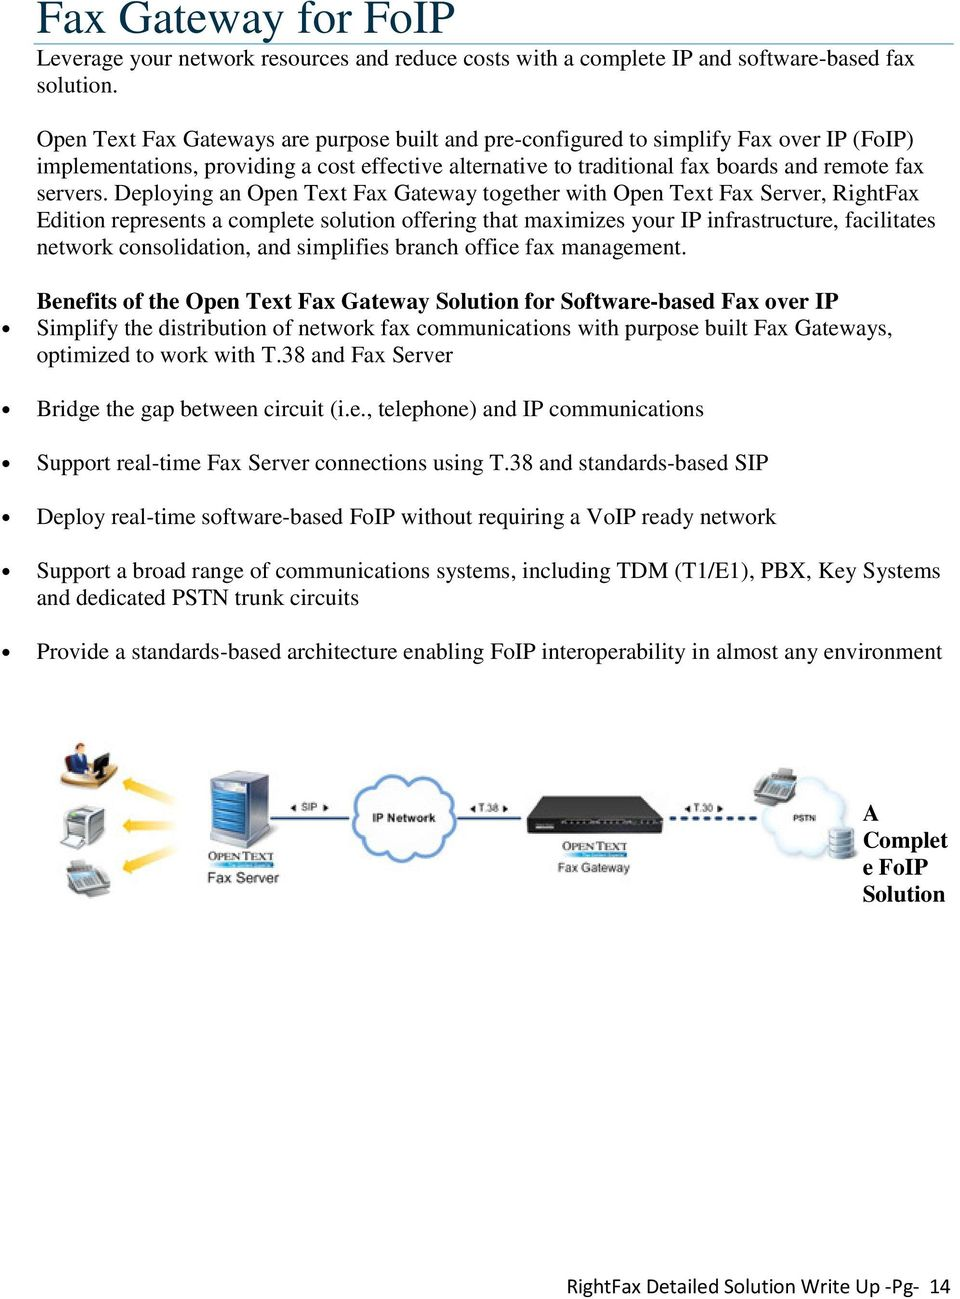 Deploying an Open Text Fax Gateway together with Open Text Fax Server, RightFax Edition represents a complete solution offering that maximizes your IP infrastructure, facilitates network